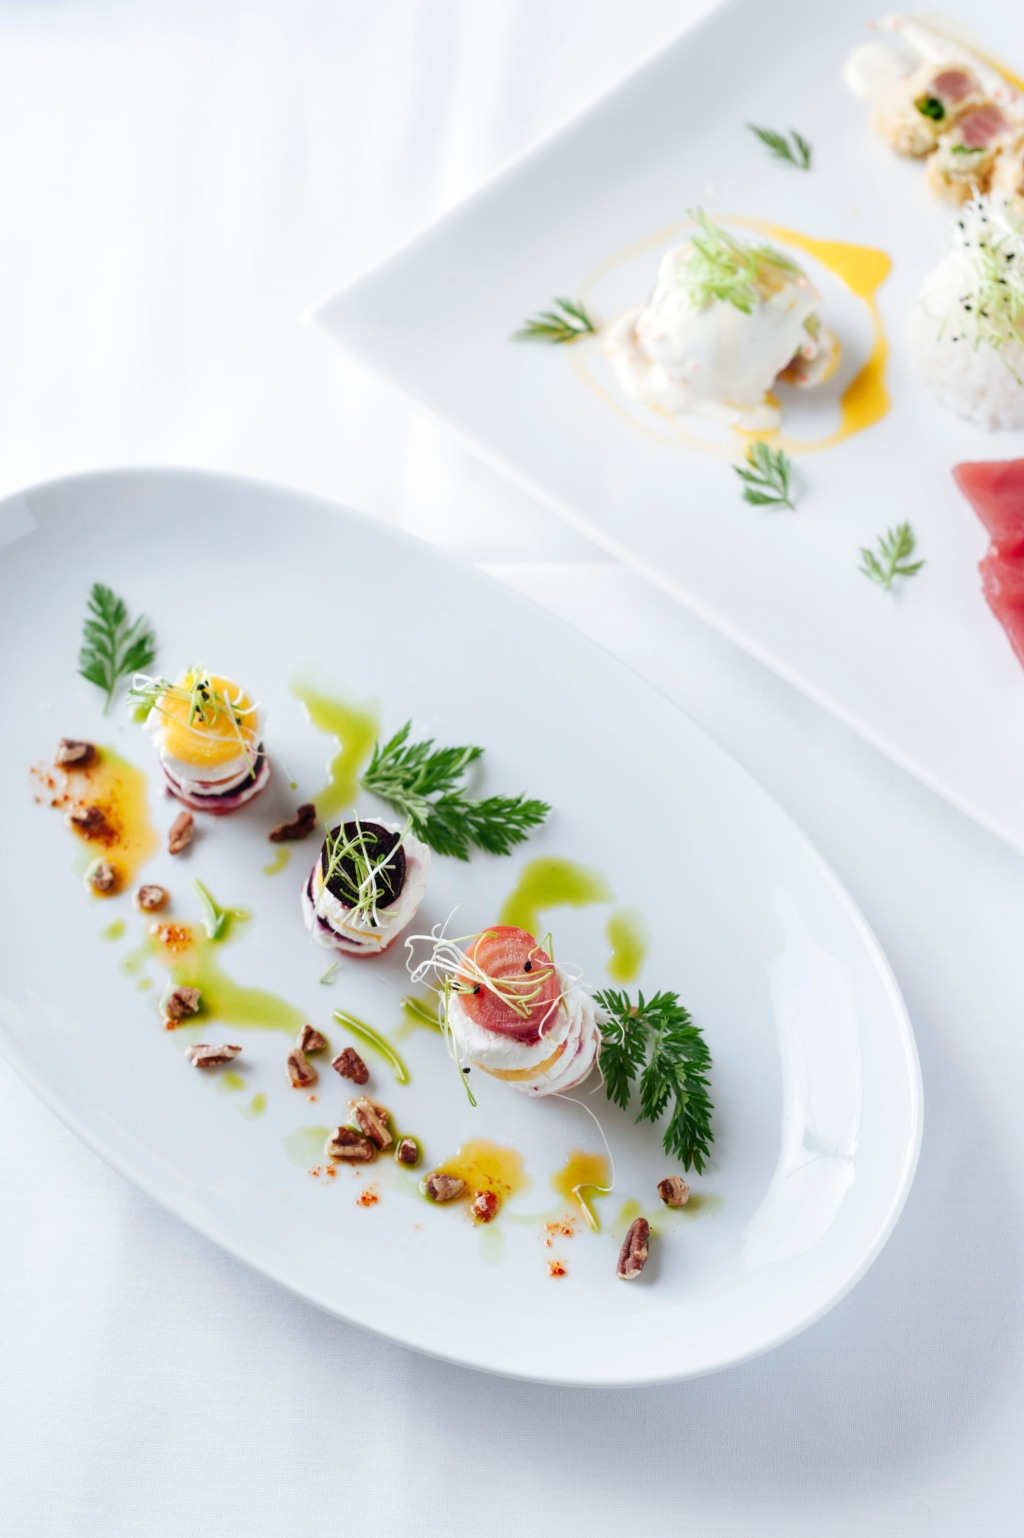 5 Food Photographers on the Art of High-End Plating - The